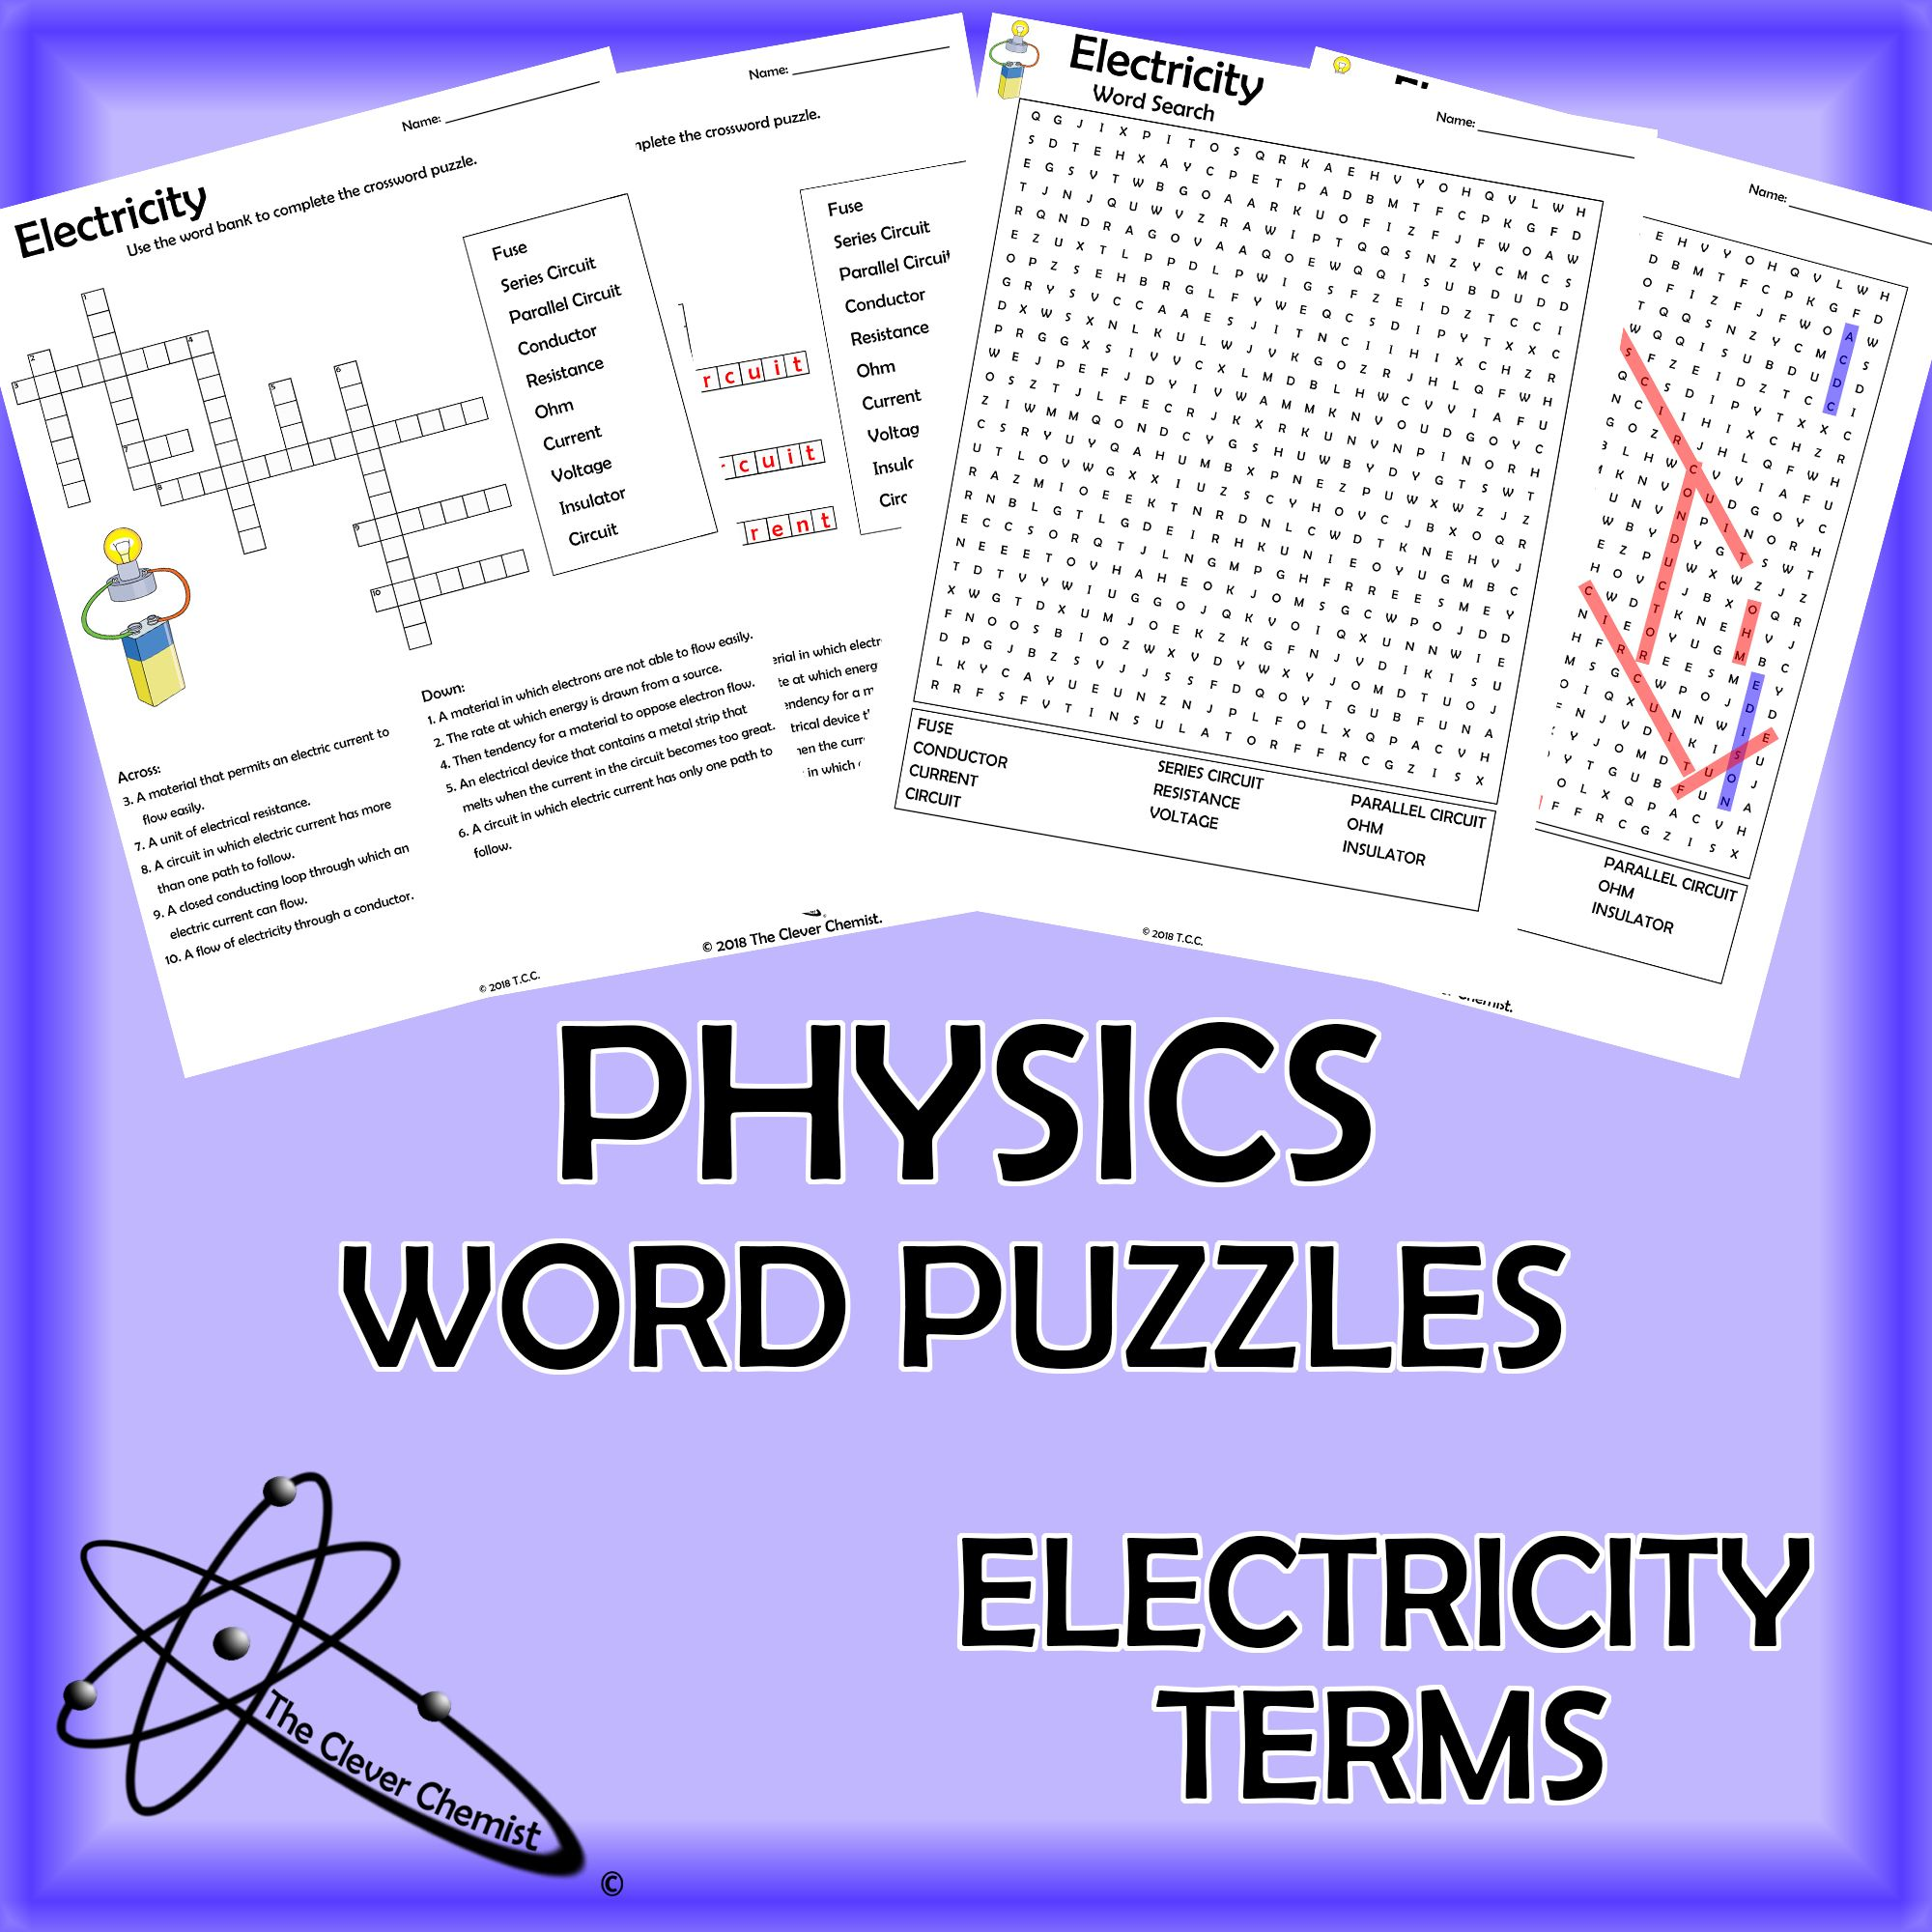 Physics Word Puzzles